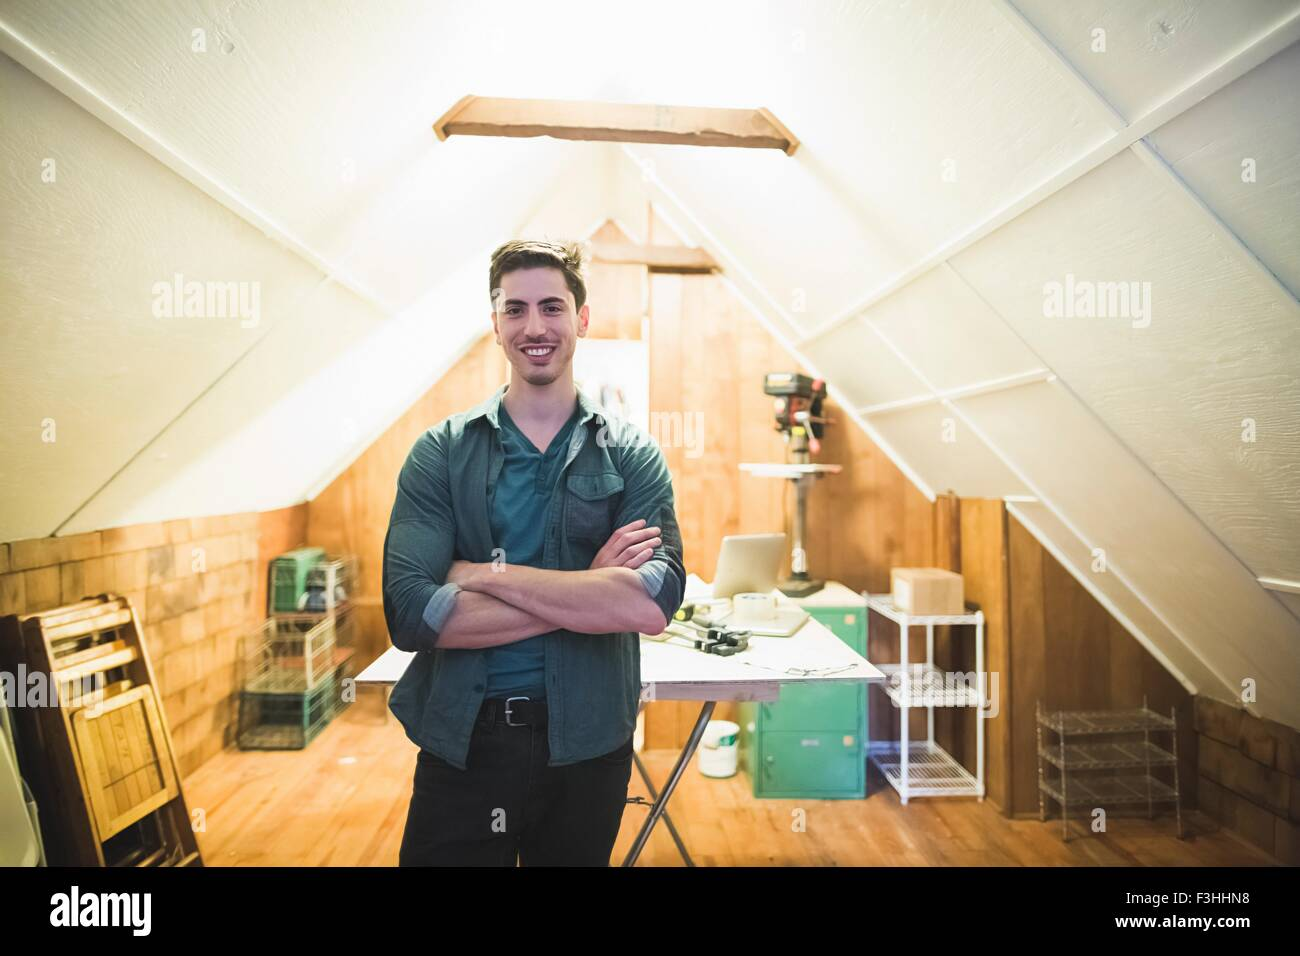 Young man standing in workspace, arms folded, looking at camera smiling - Stock Image